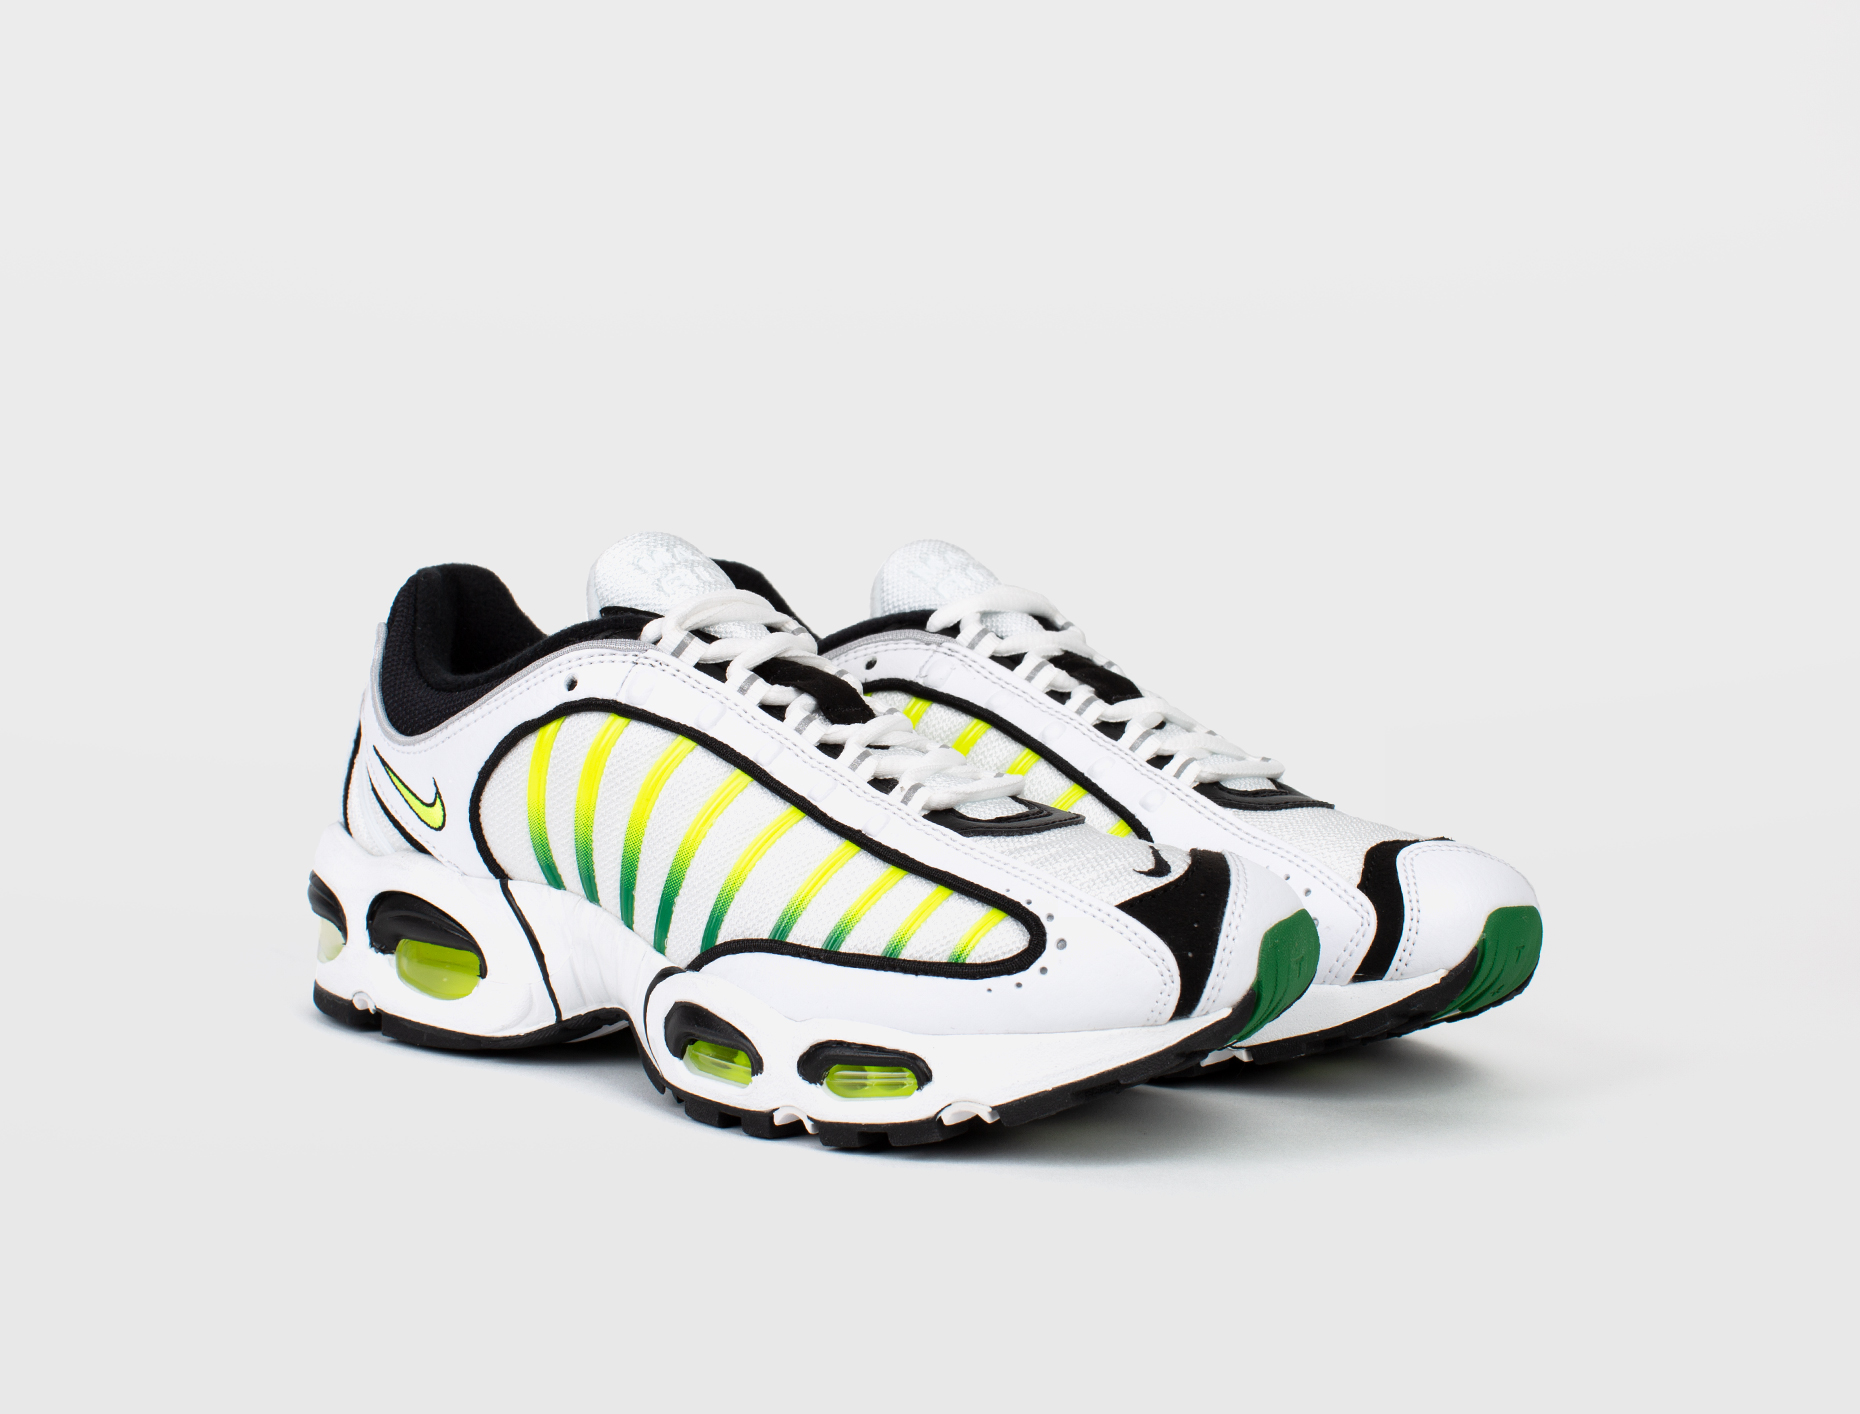 reputable site 32d9e 83cbc ... Preview  Air Max Tailwind IV Sneaker ...